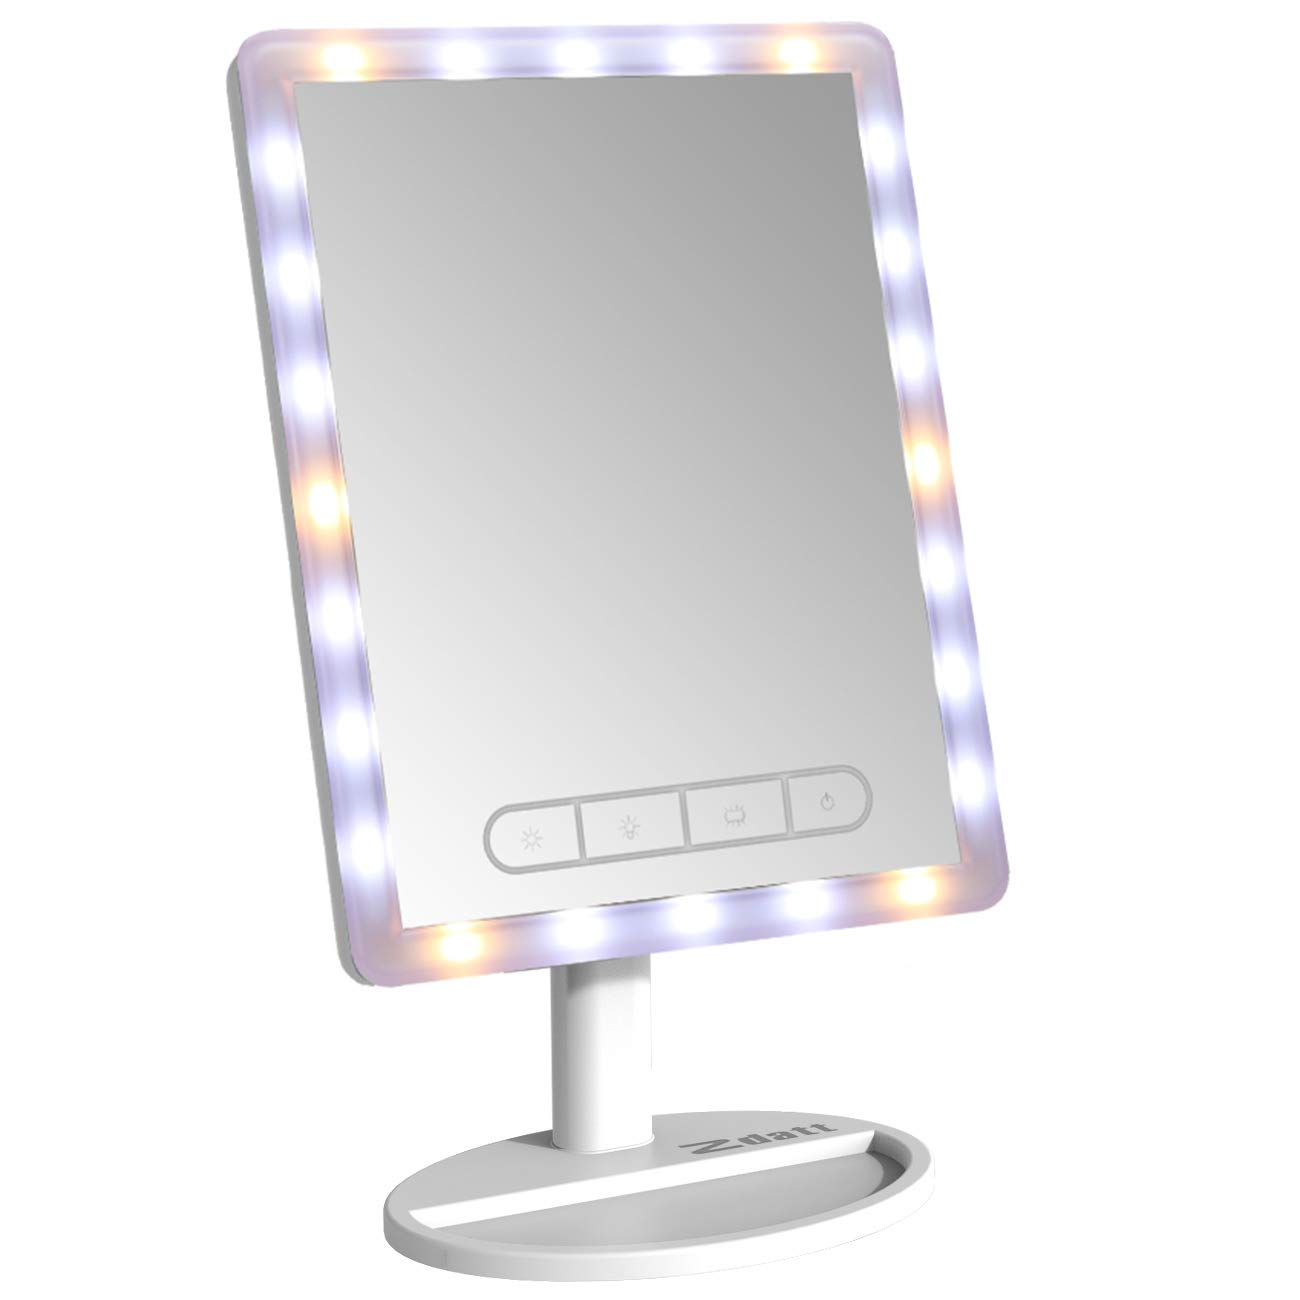 16'' Large Vanity Makeup Mirror with Lights Vanity Lighted LED Makeup Mirror with 24 LED Lights Make Up Mirror Cosmetic Mirrors Table Set Touch-Screen Light Control Adjustable Cosmetic White by Zdatt